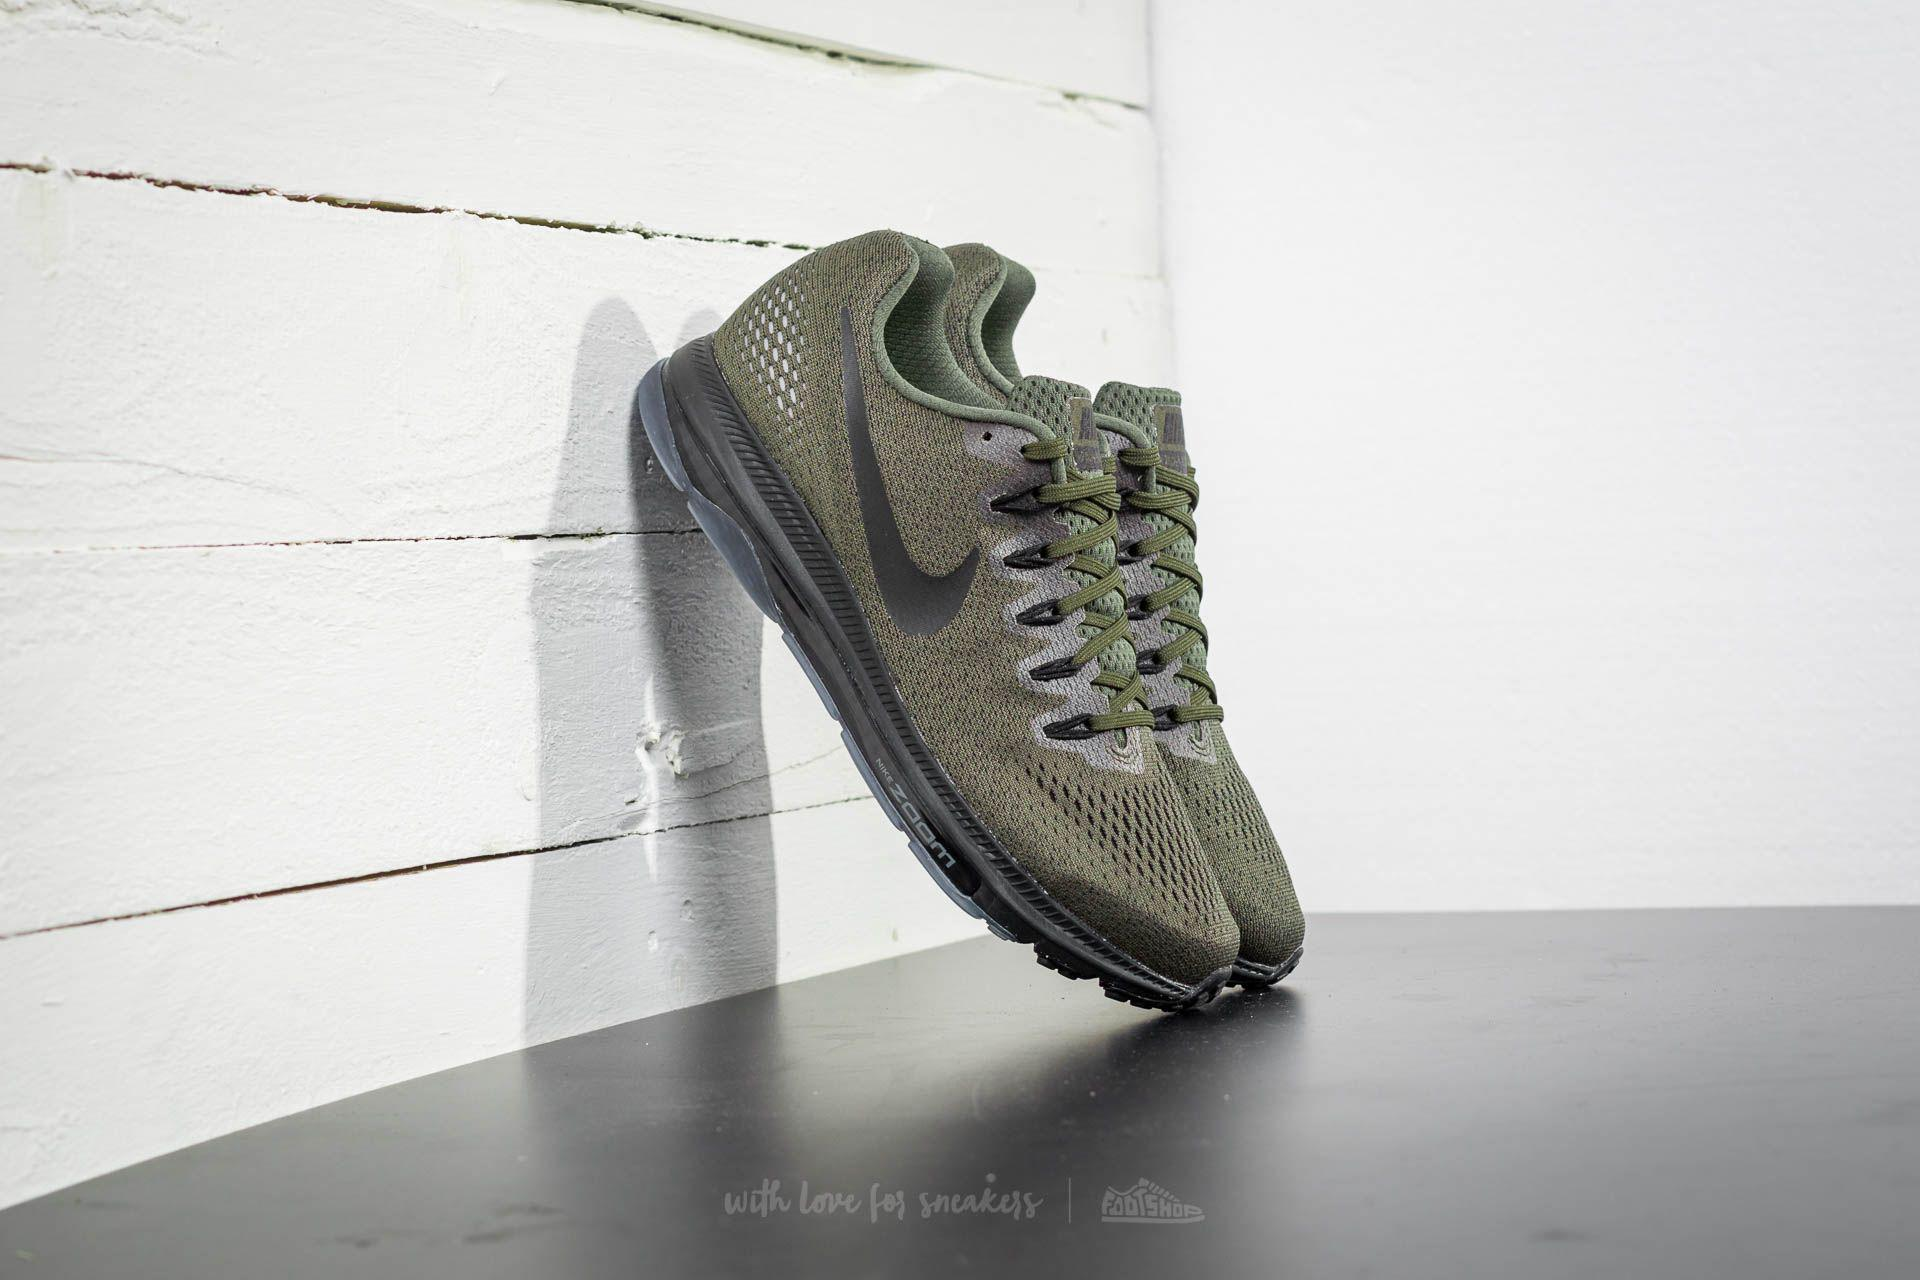 e15ad28c38b6 Lyst - Nike Zoom All Out Low Cargo Khaki  Black for Men